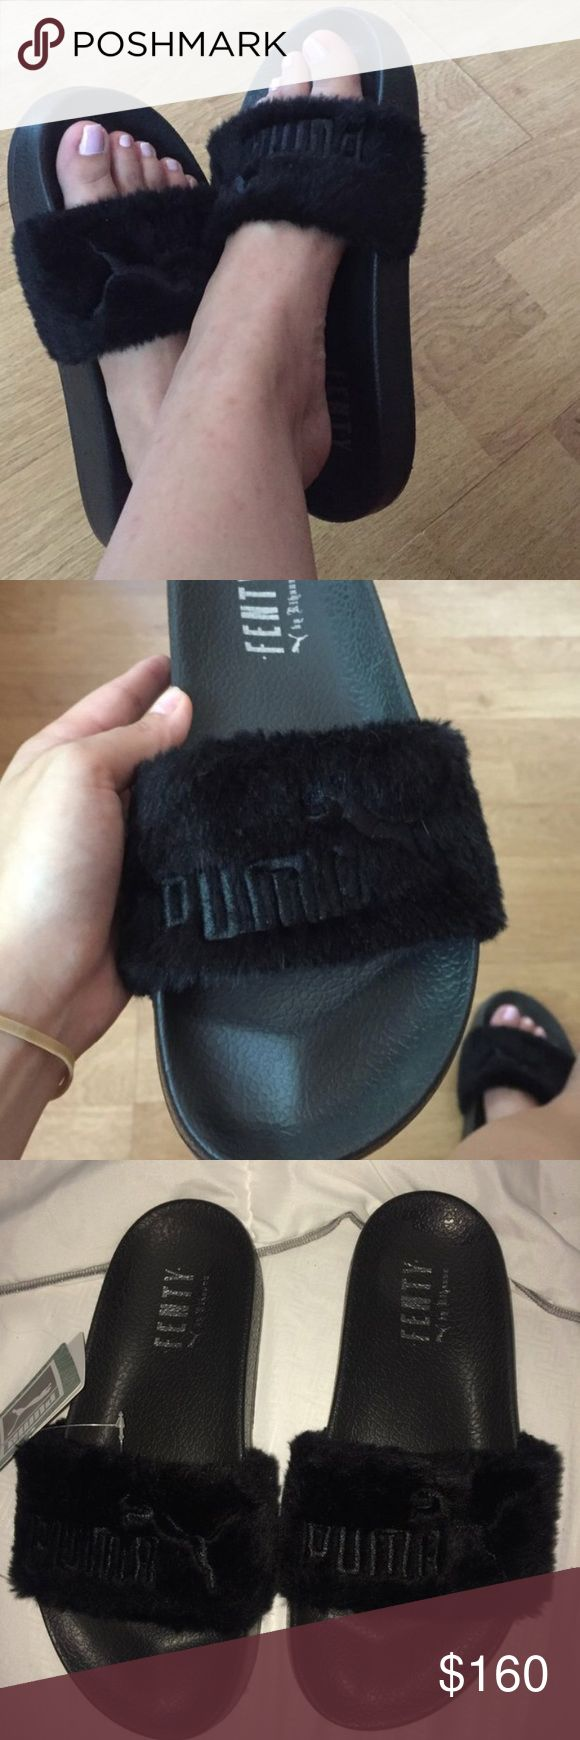 Fenty Puma Shoes Very popular but rare  Purchased online at StadiumGoods Authentic Black Leadcat Fenty style  Size 7.5 NWT fenty Shoes Slippers